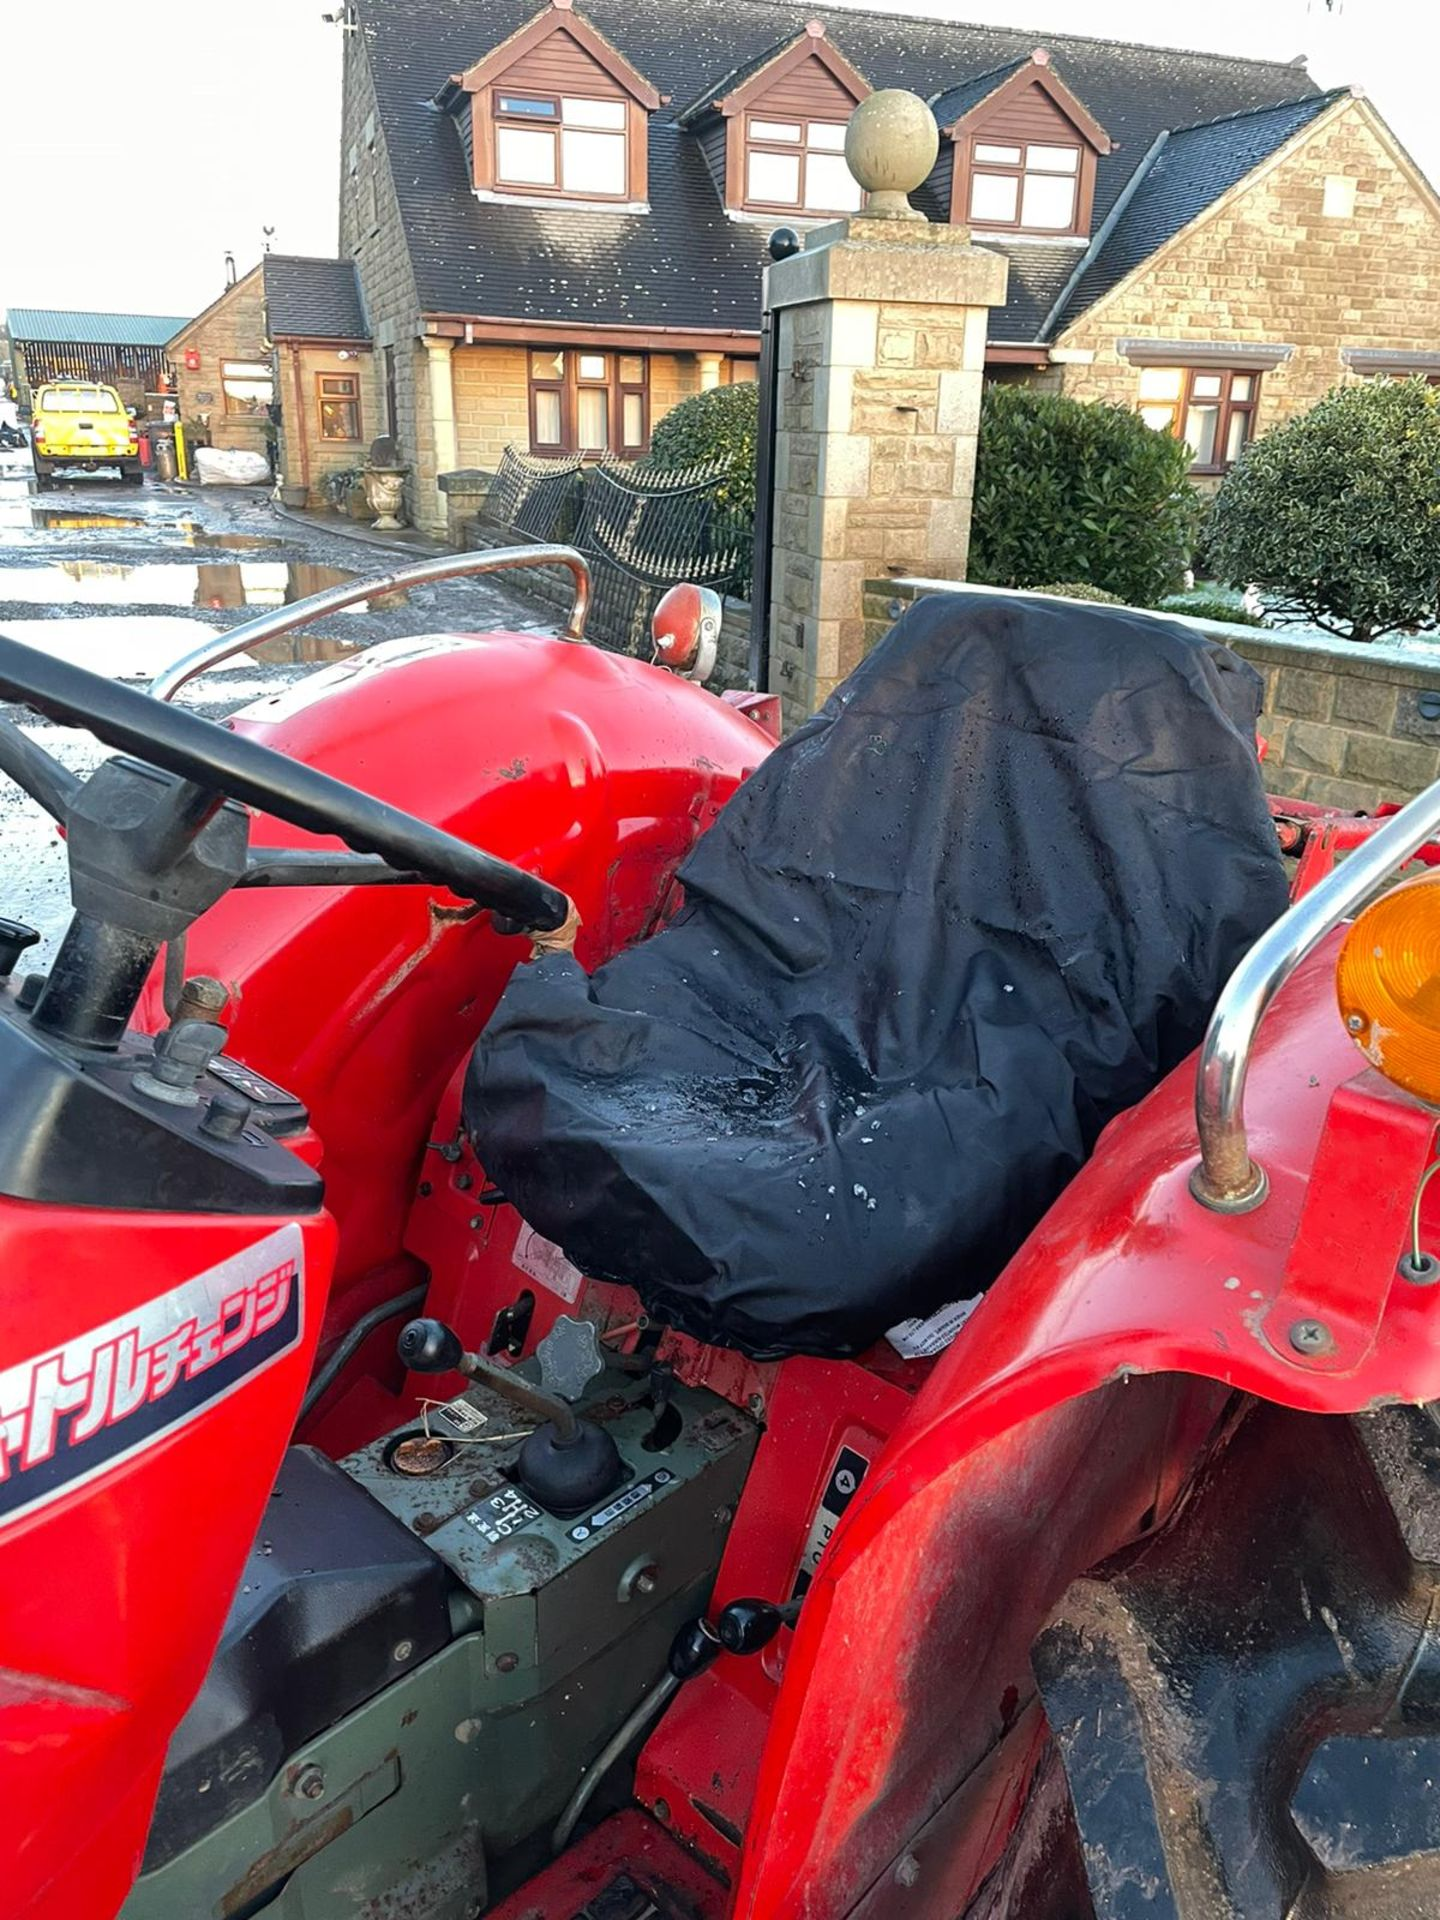 YANMAR YM2820D TRACTOR, 4 WHEEL DRIVE, WITH ROTATOR, RUNS AND WORKS, 3 POINT LINKAGE *PLUS VAT* - Image 4 of 8